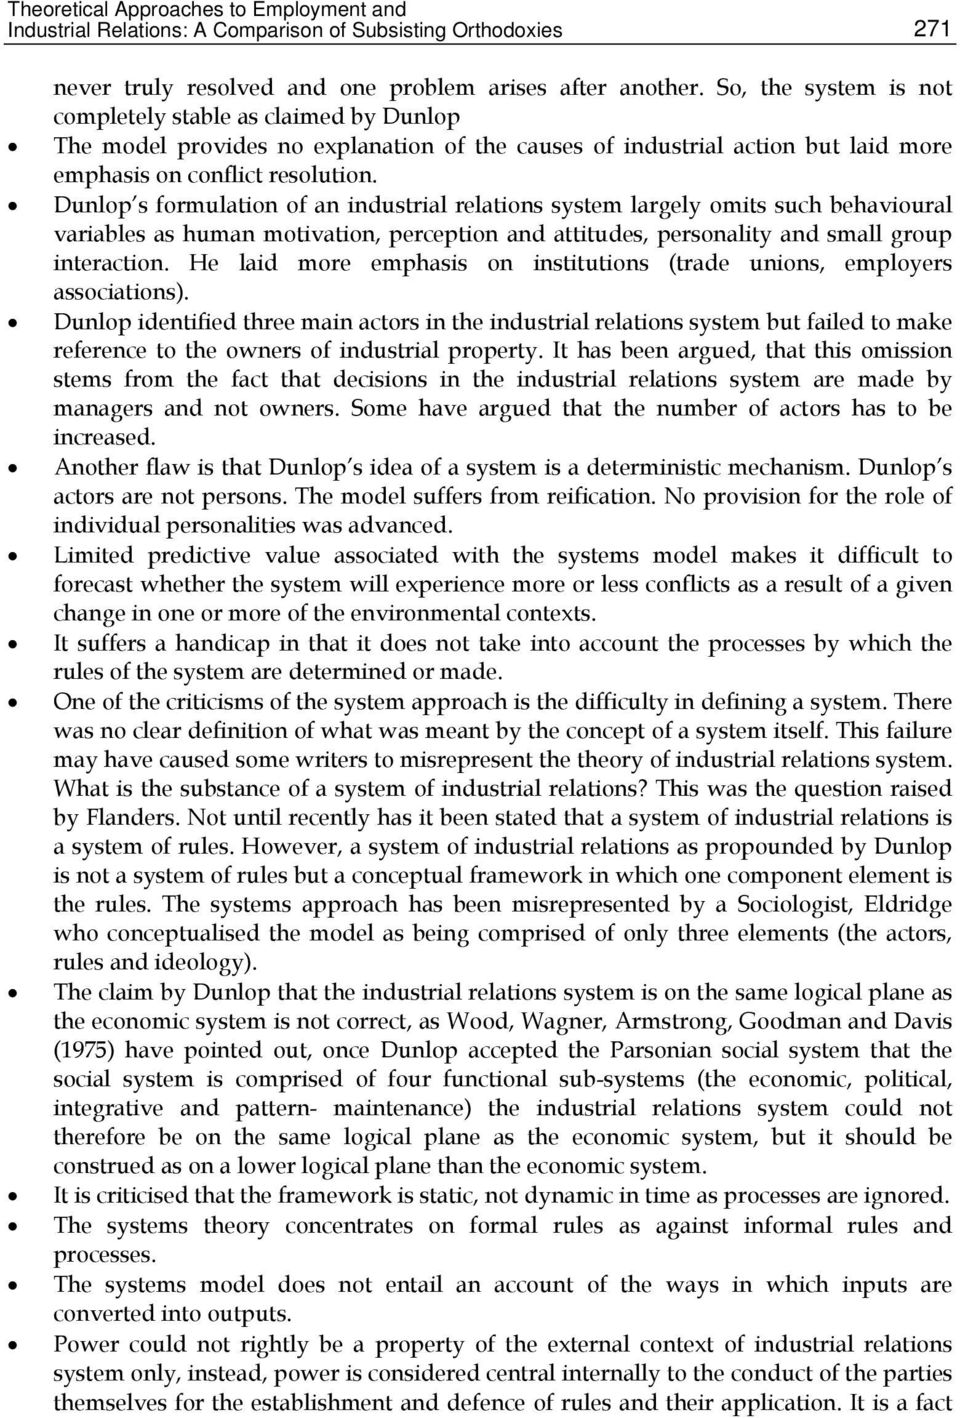 theoretical approaches to employment and industrial relations a comparison of subsisting orthodoxies Theoretical approaches to employment and industrial relations: a comparison of subsisting orthodoxies 1 introduction theory could be viewed as a coherent group of assumptions or propositions put forth to explain a phenomenon.